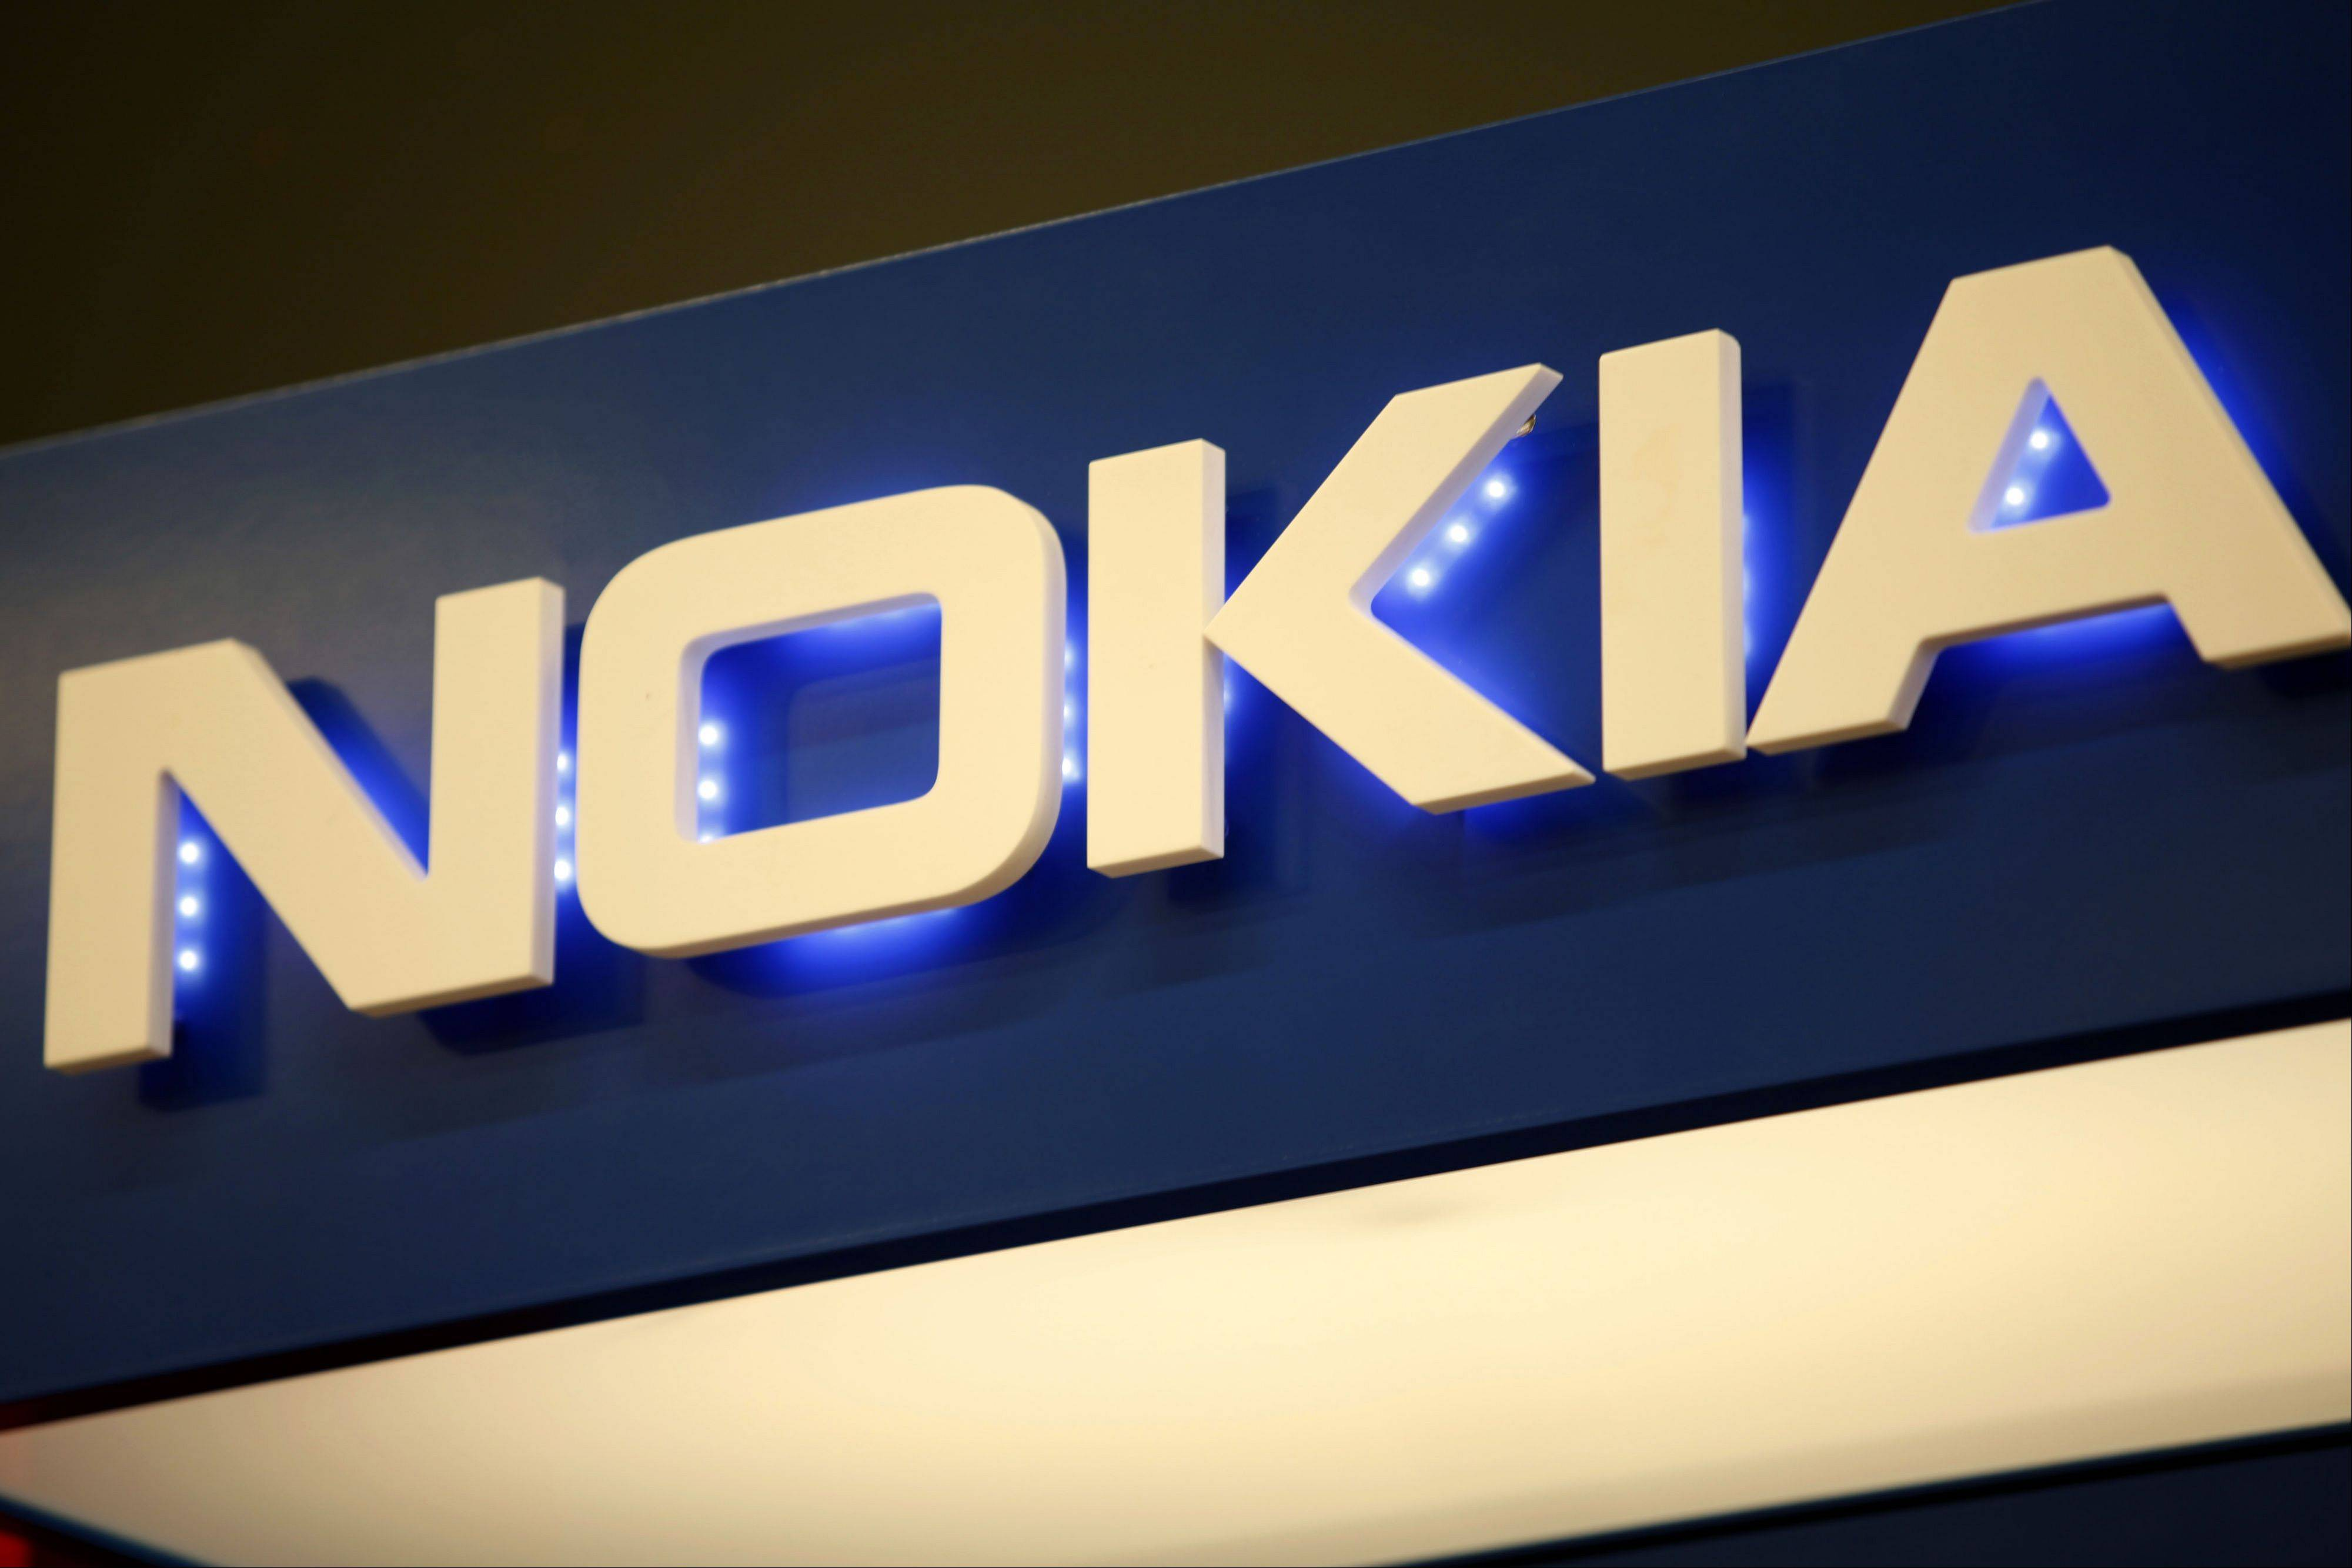 Nokia, burning cash as it struggles to revive its smartphone business, is winning time for the recovery effort by gaining more customers for another product: basic mobile phones it sells for $39.